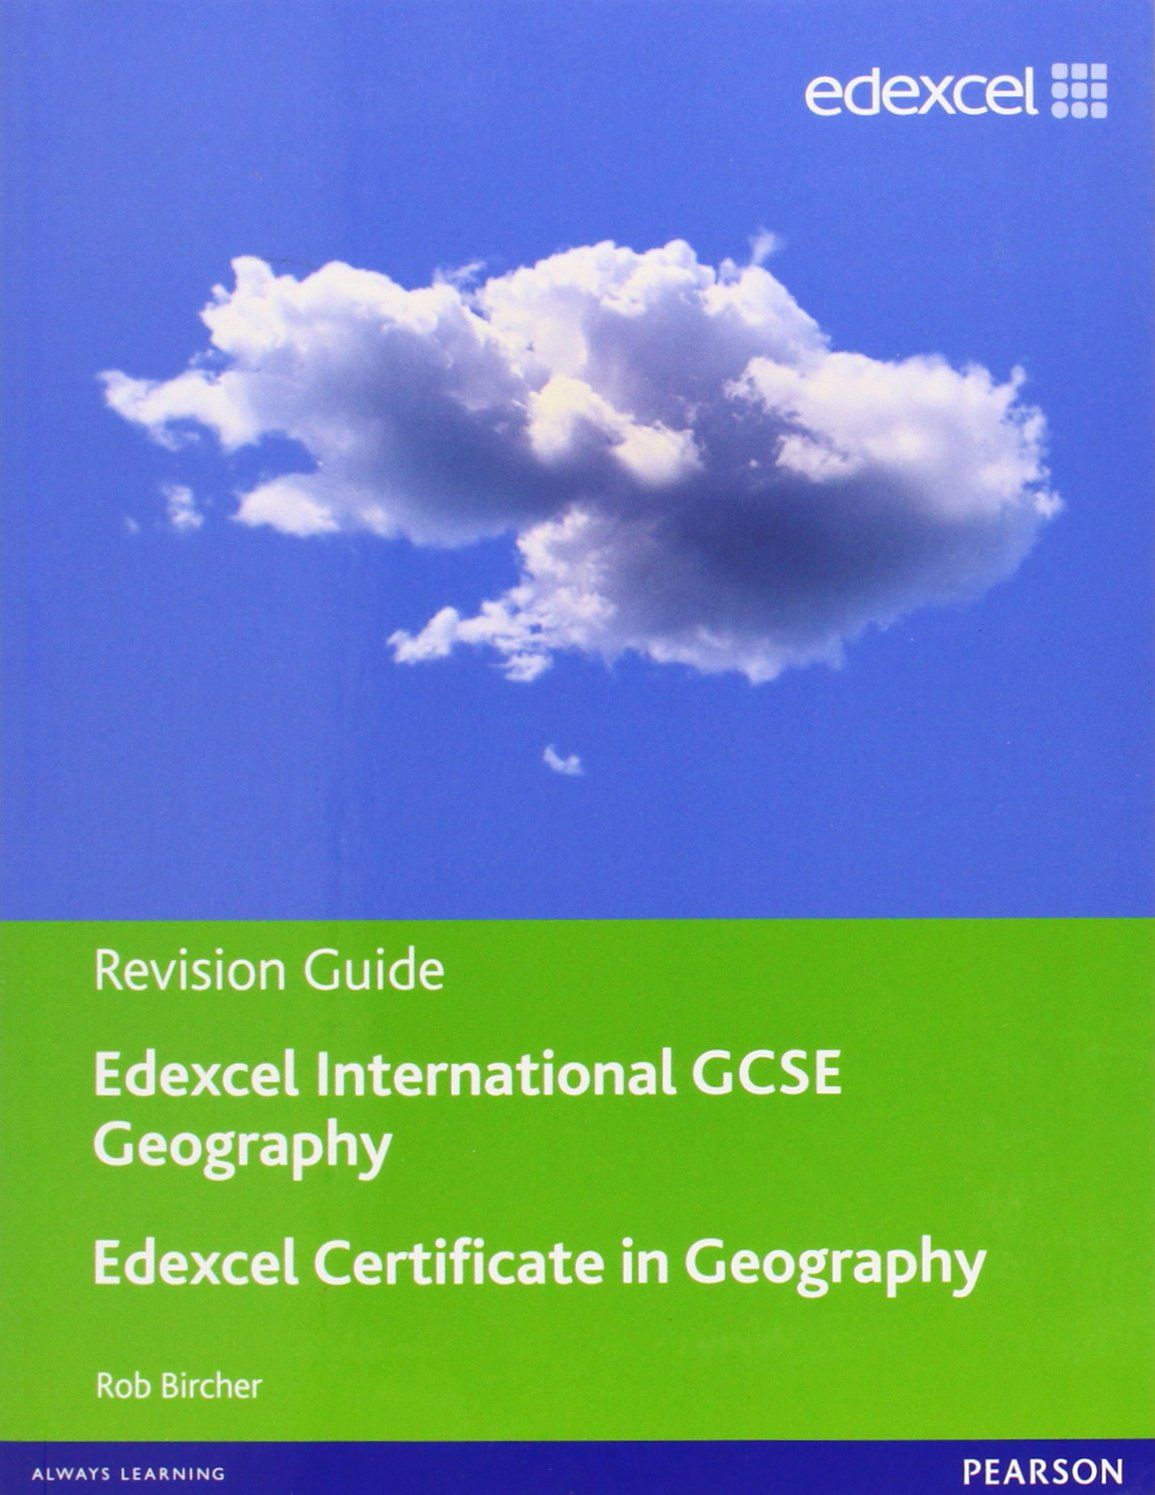 Edexcel International GCSE/Certificate Geography Revision Guide print and  online edition: Rob Bircher: 9781446905777: Amazon.com: Books